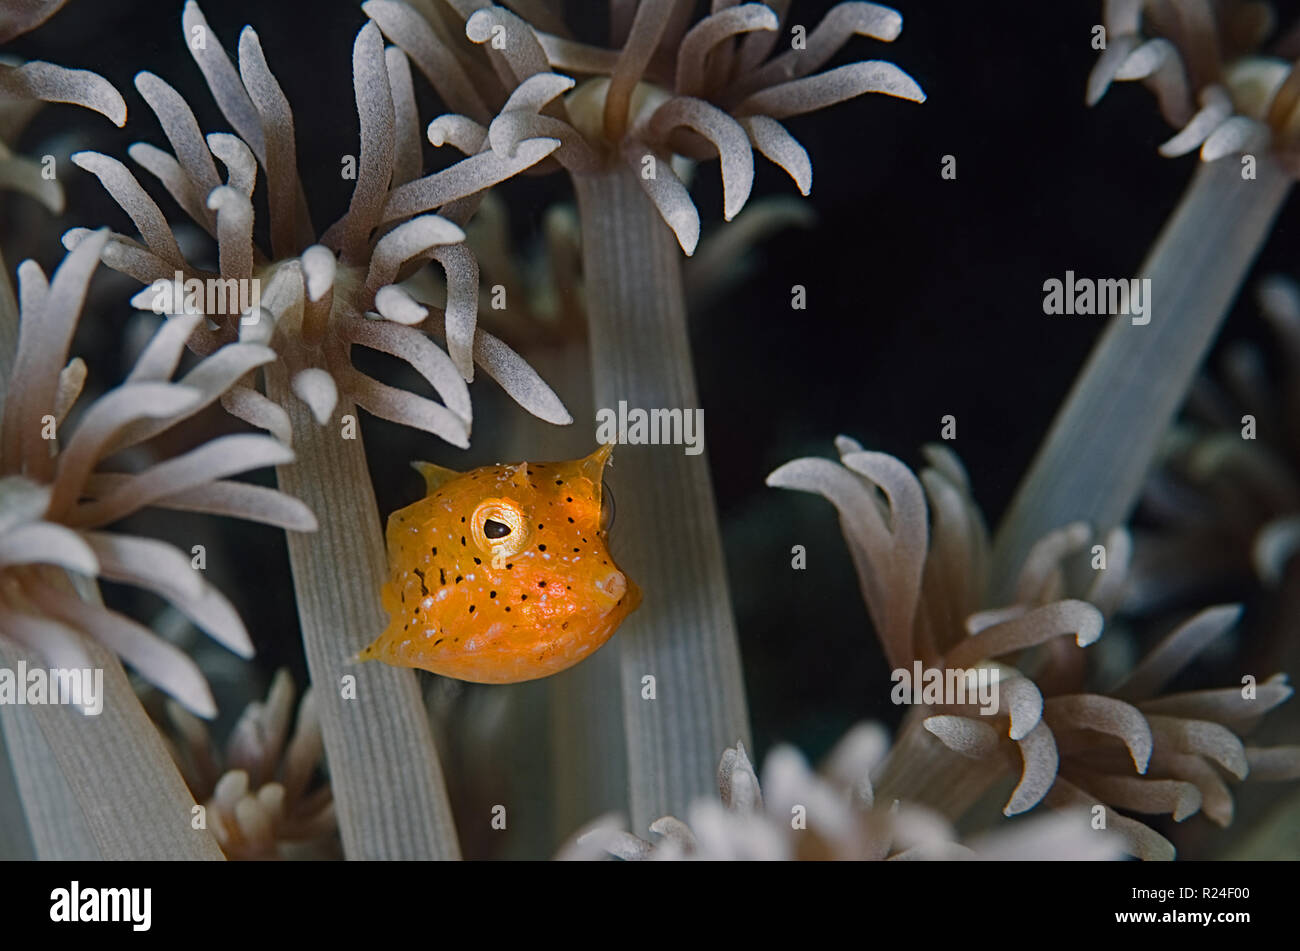 Juvenile yellow boxfish (Ostracion cubicus) is a species of boxfish. It can be found in reefs throughout the Pacific and Indian Ocean. - Stock Image